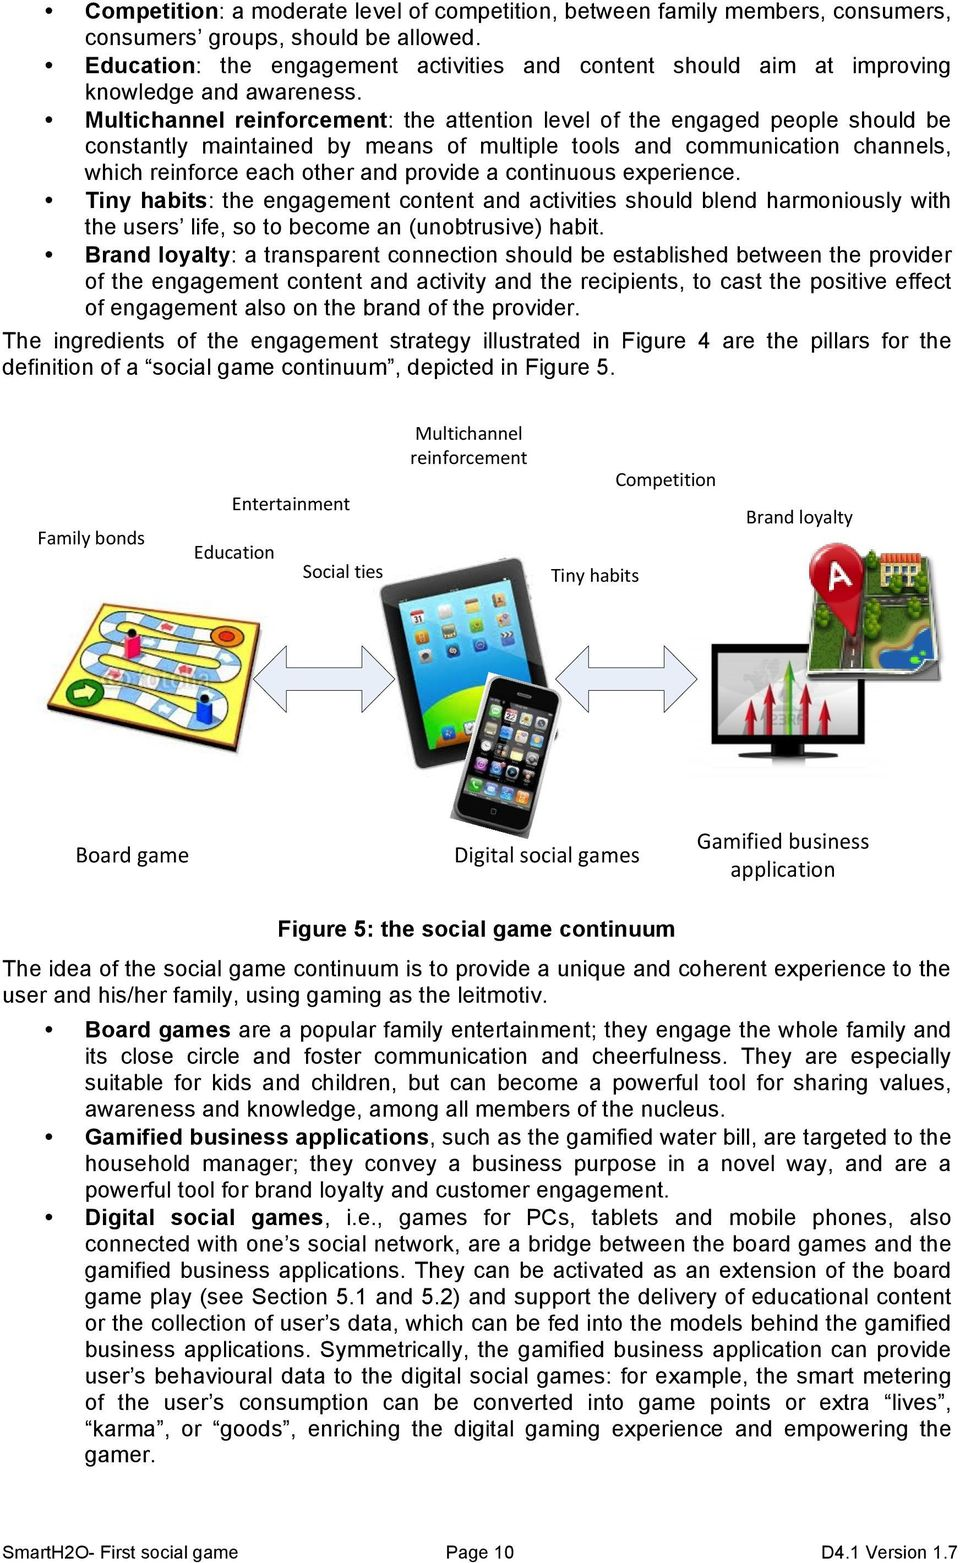 Multichannel reinforcement: the attention level of the engaged people should be constantly maintained by means of multiple tools and communication channels, which reinforce each other and provide a